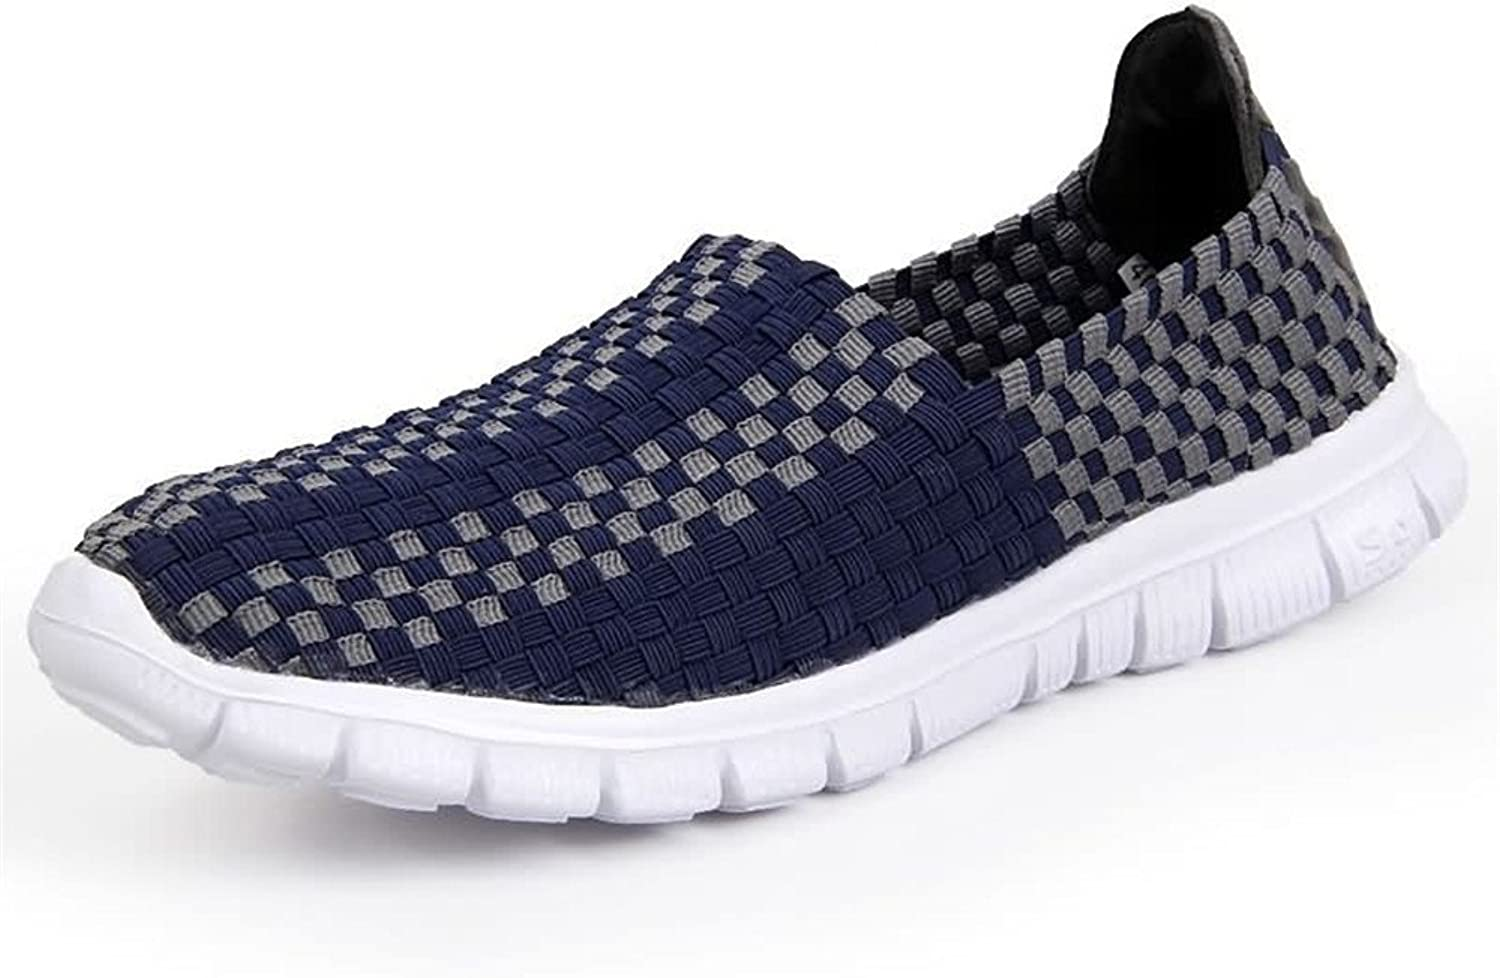 Men's Fashion Sneaker Men's Fashion Athletic shoes Strip Pattern Slip On Splice Vamp Leisure Sneaker Breathable (color   Navy, Size   9.5 D(M) US)